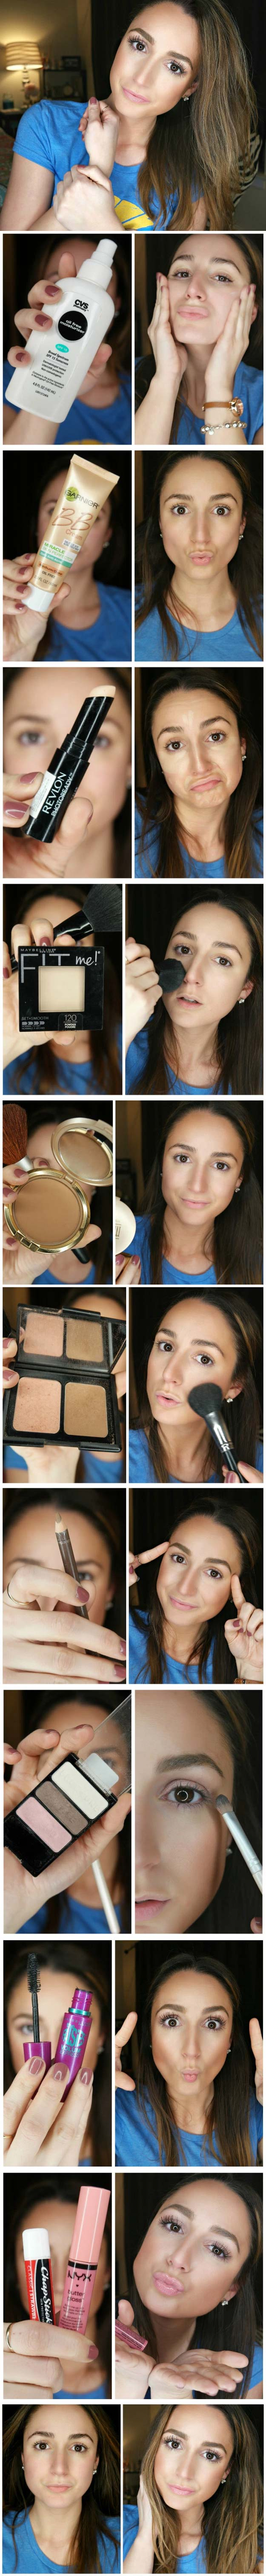 Best Makeup Tutorials for Teens -5 Minute Everyday Makeup Routine - Easy Makeup Ideas for